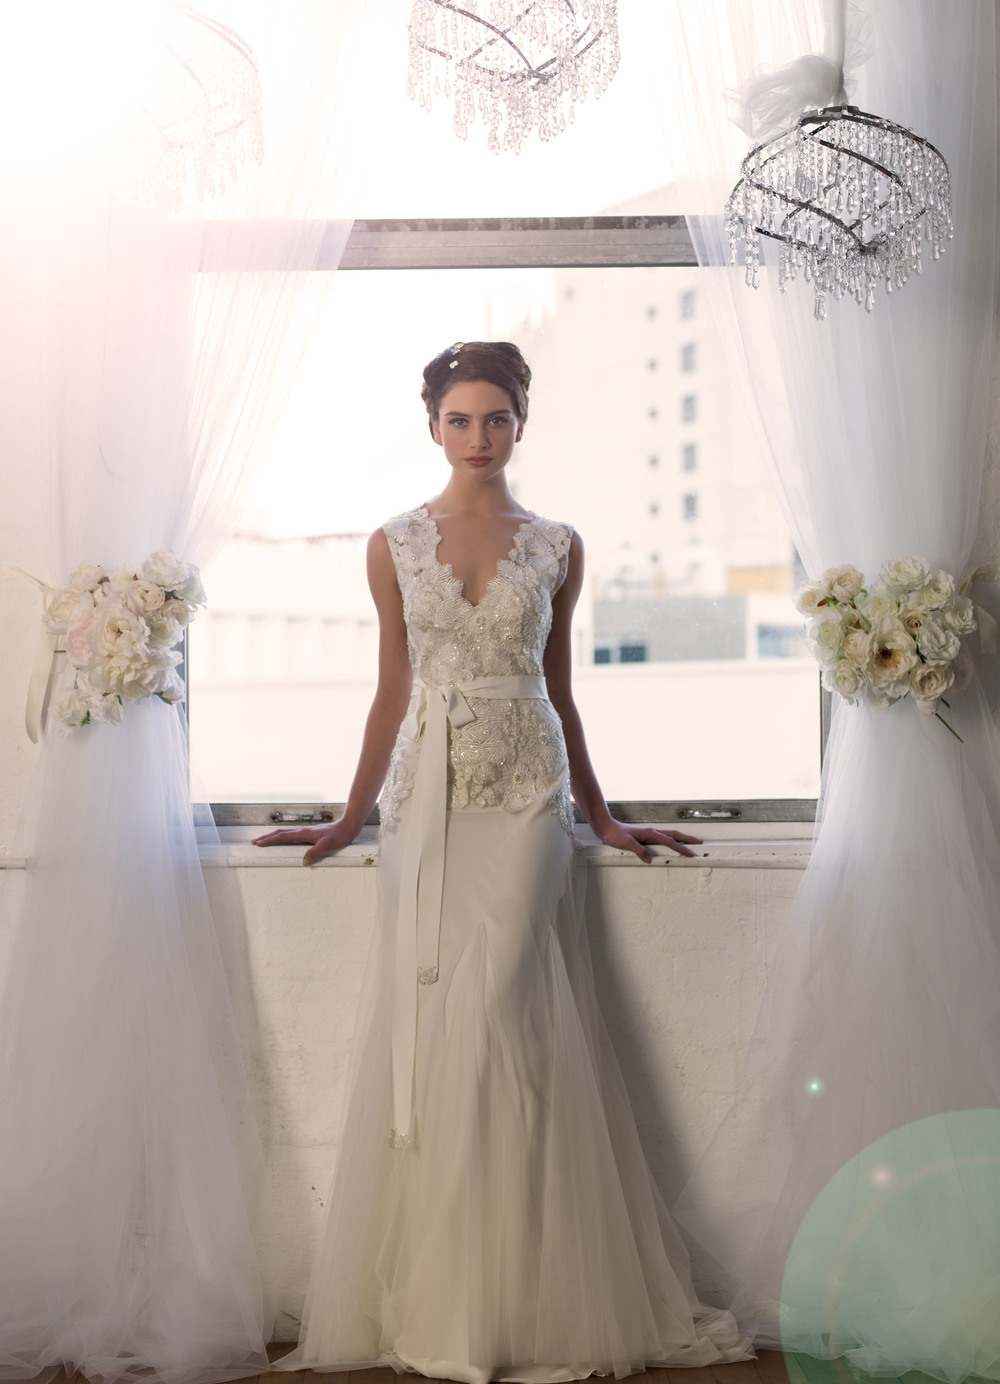 Sarah Janks Wedding Gown - Fall 2014 Collection {Delilah} : embroidered flowers accented with faceted beads on a sheer, tulle overlay